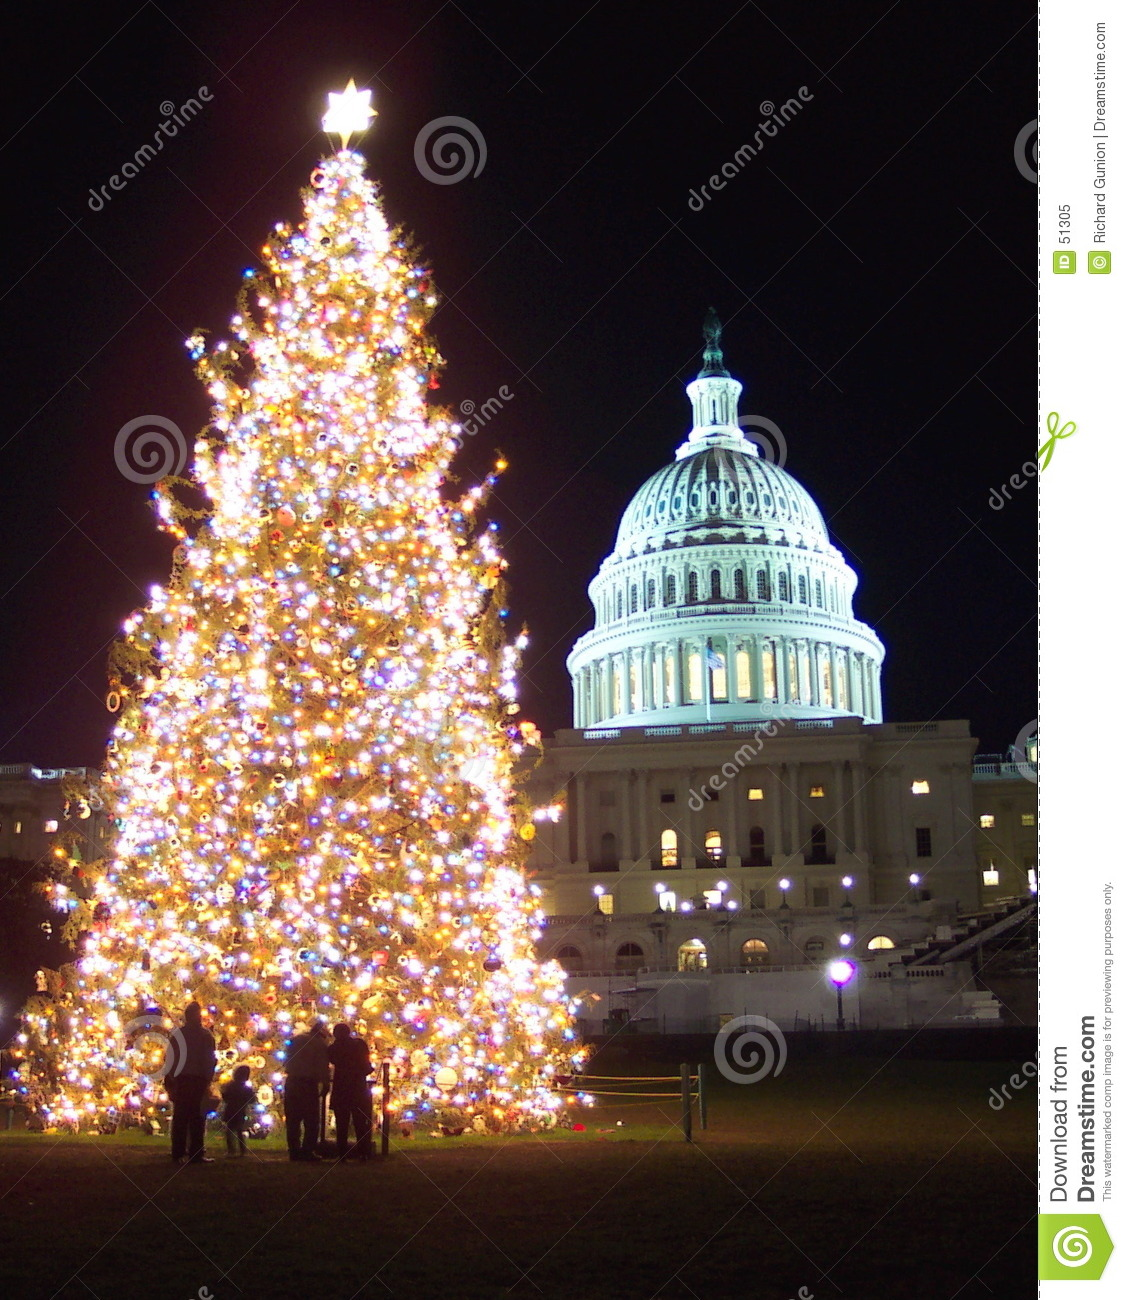 Kerstmis in Washington D.C.